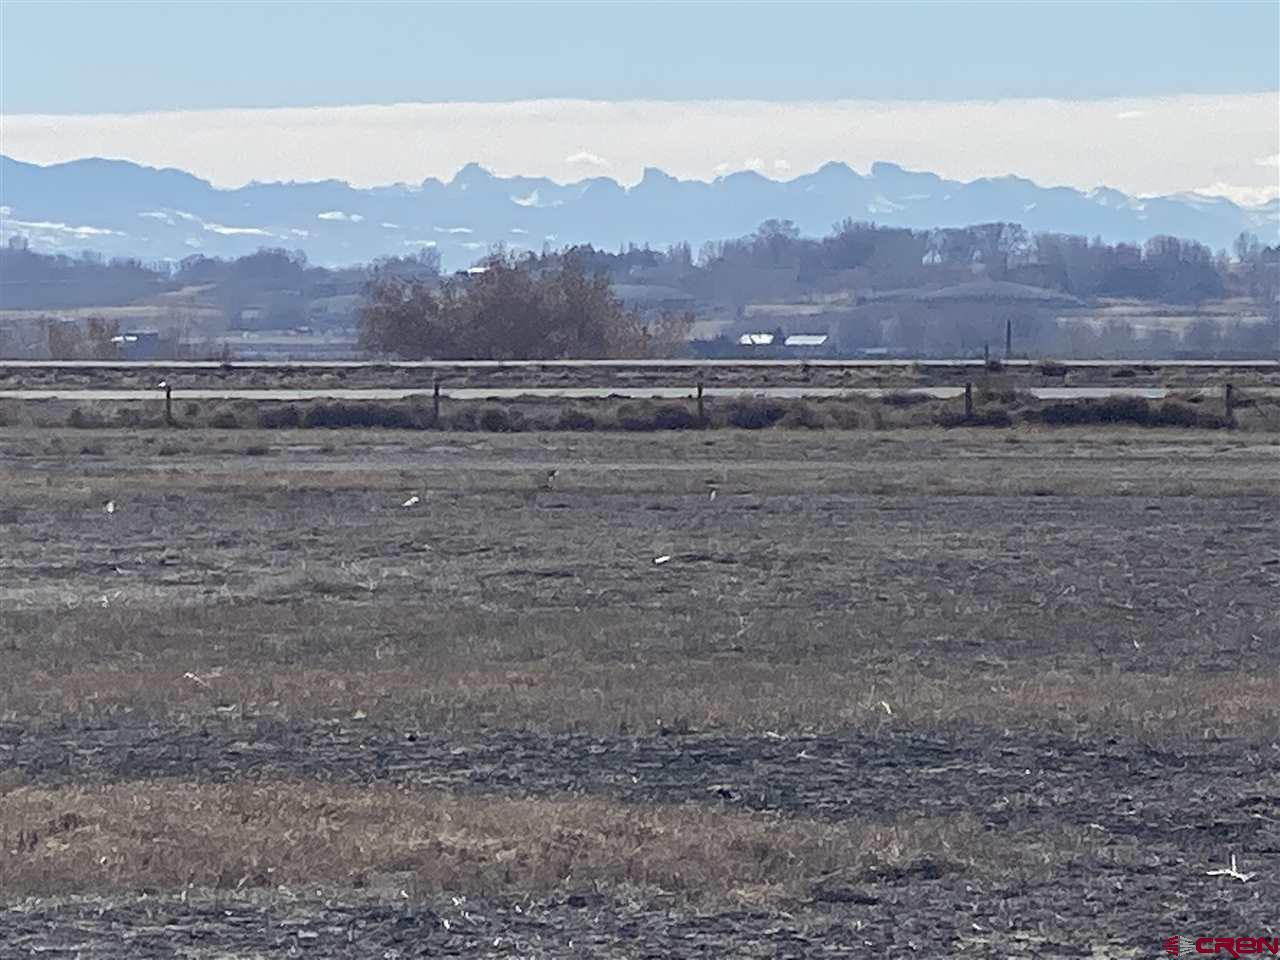 Located near Delta Colorado, This 1.7 Acre lot in the Westwinds Airpark offers one of the last lots located directly off main runway, with pre approved direct access (to be built in the future) to the main runway. This lot has great views of the San Juan Mountains and the Uncompaghre National Forest. Just a short drive to Public lands this lot gives the outdoorsman plenty of options and the pilots the ability to keep their aircraft at their home. Landscaping irrigation is provided through the HOA and is located at the corner of the lot.